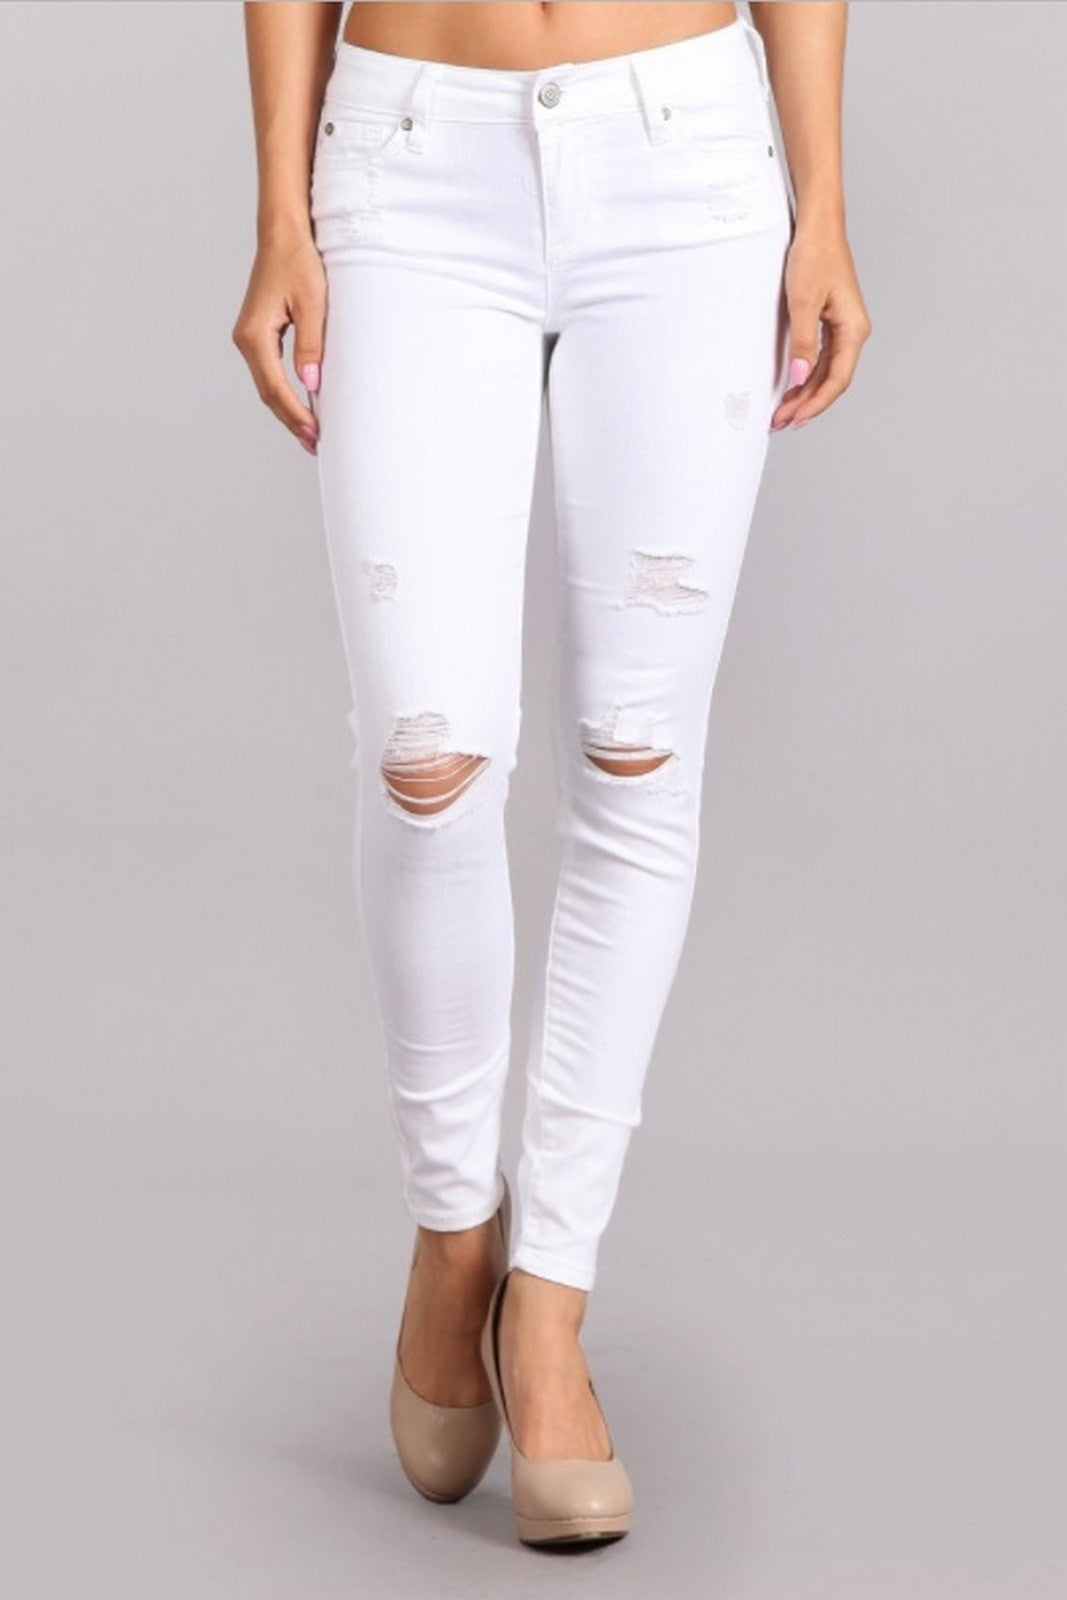 Celebrity Pink Women's Mid Rise Destroyed Skinny Jeans White  CJ22005H50